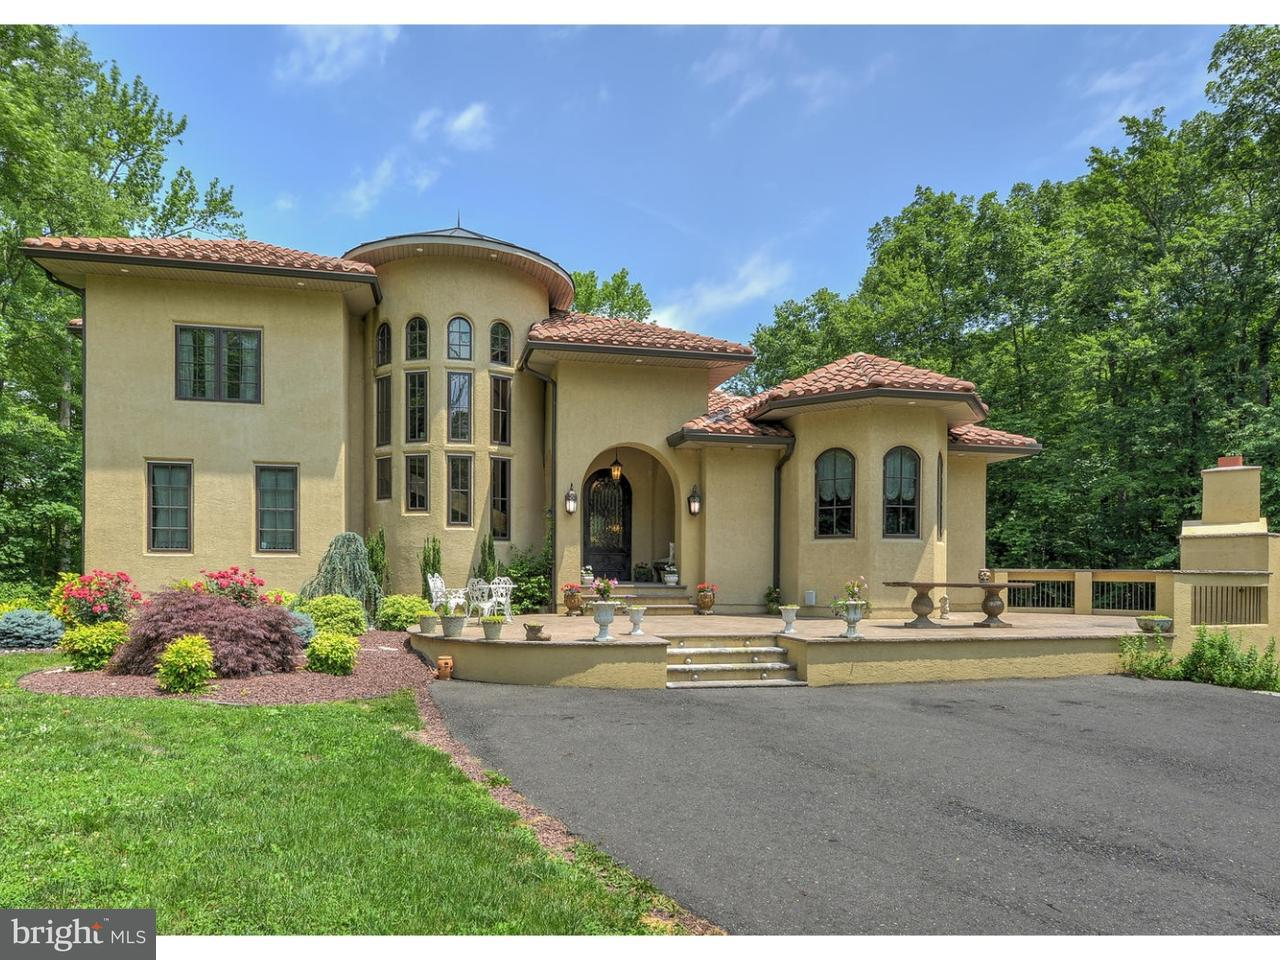 Single Family Home for Sale at 1208 JACKSONVILLE SMITHVILLE Springfield, New Jersey 08505 United States